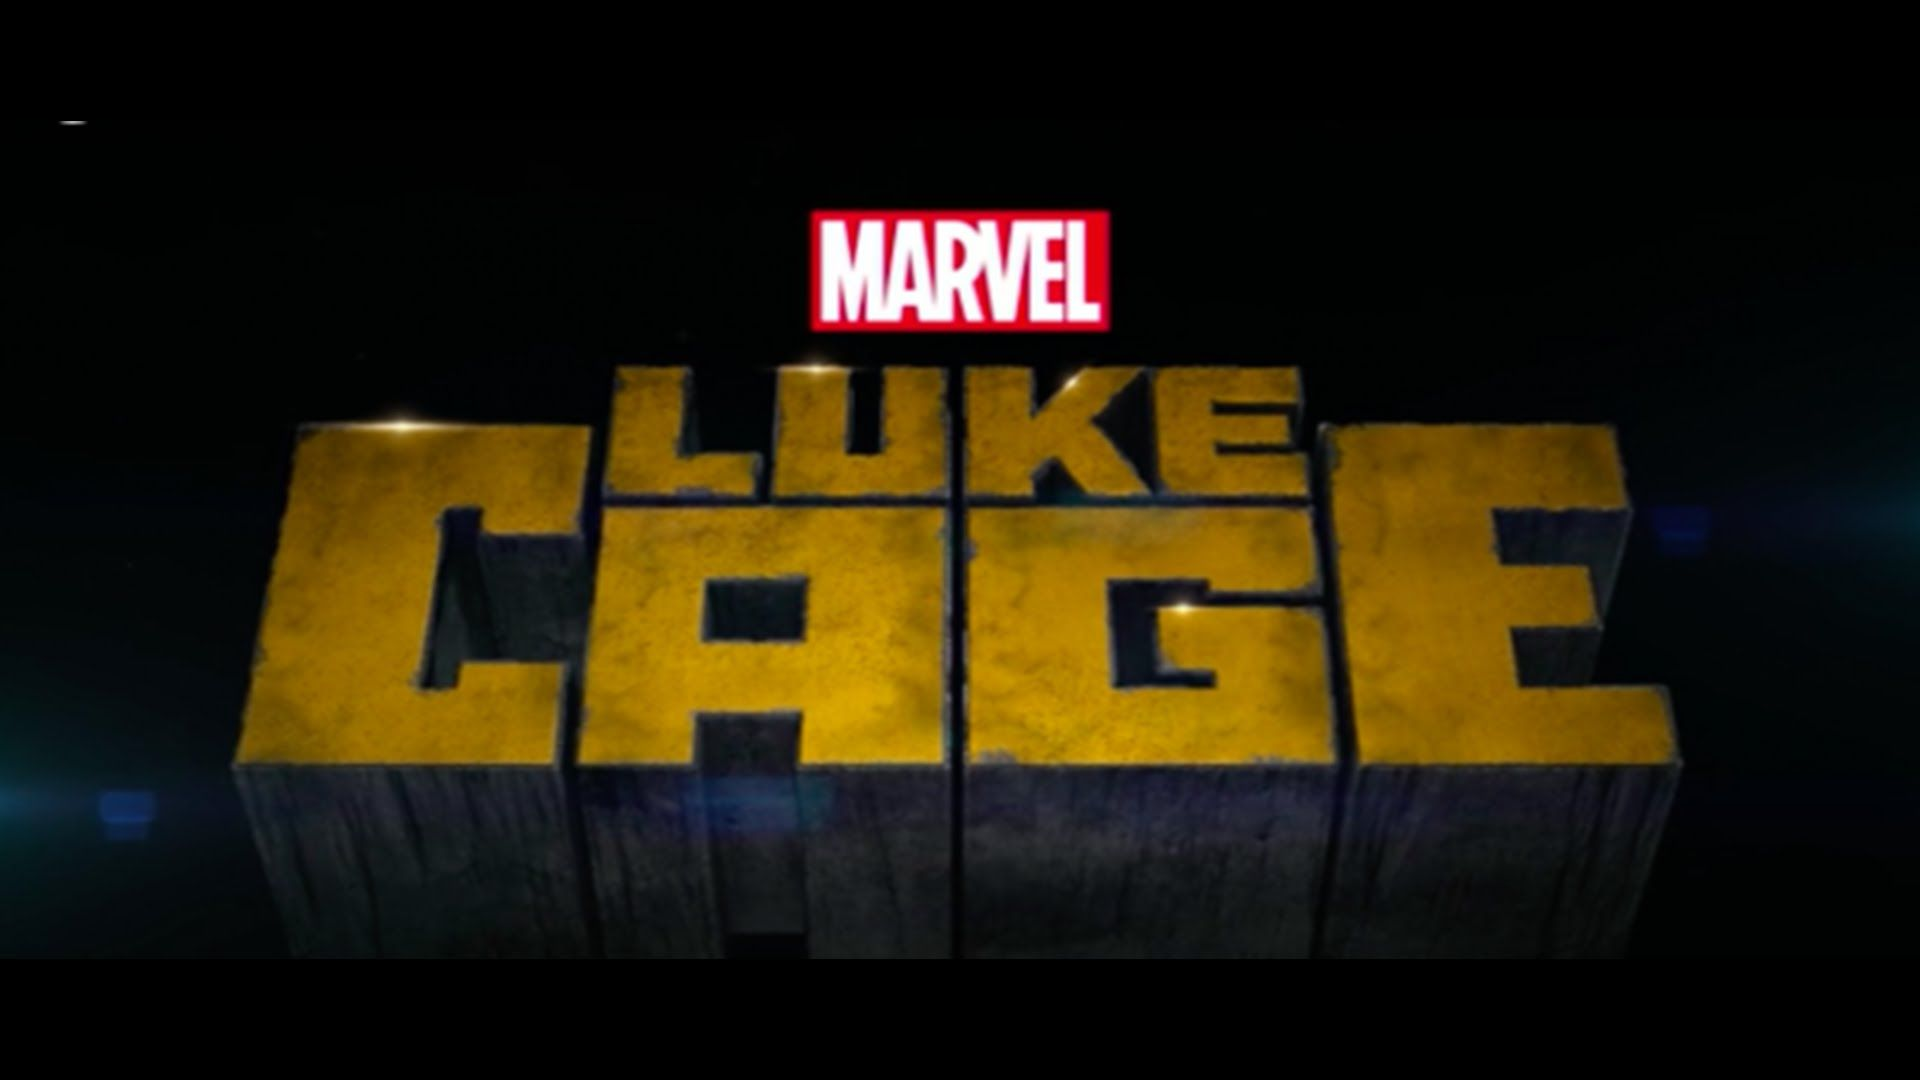 Top Wallpaper Marvel Luke Cage - 5739442561c867dae2ff4ec6a5cac4fd  Perfect Image Reference_97214.jpg